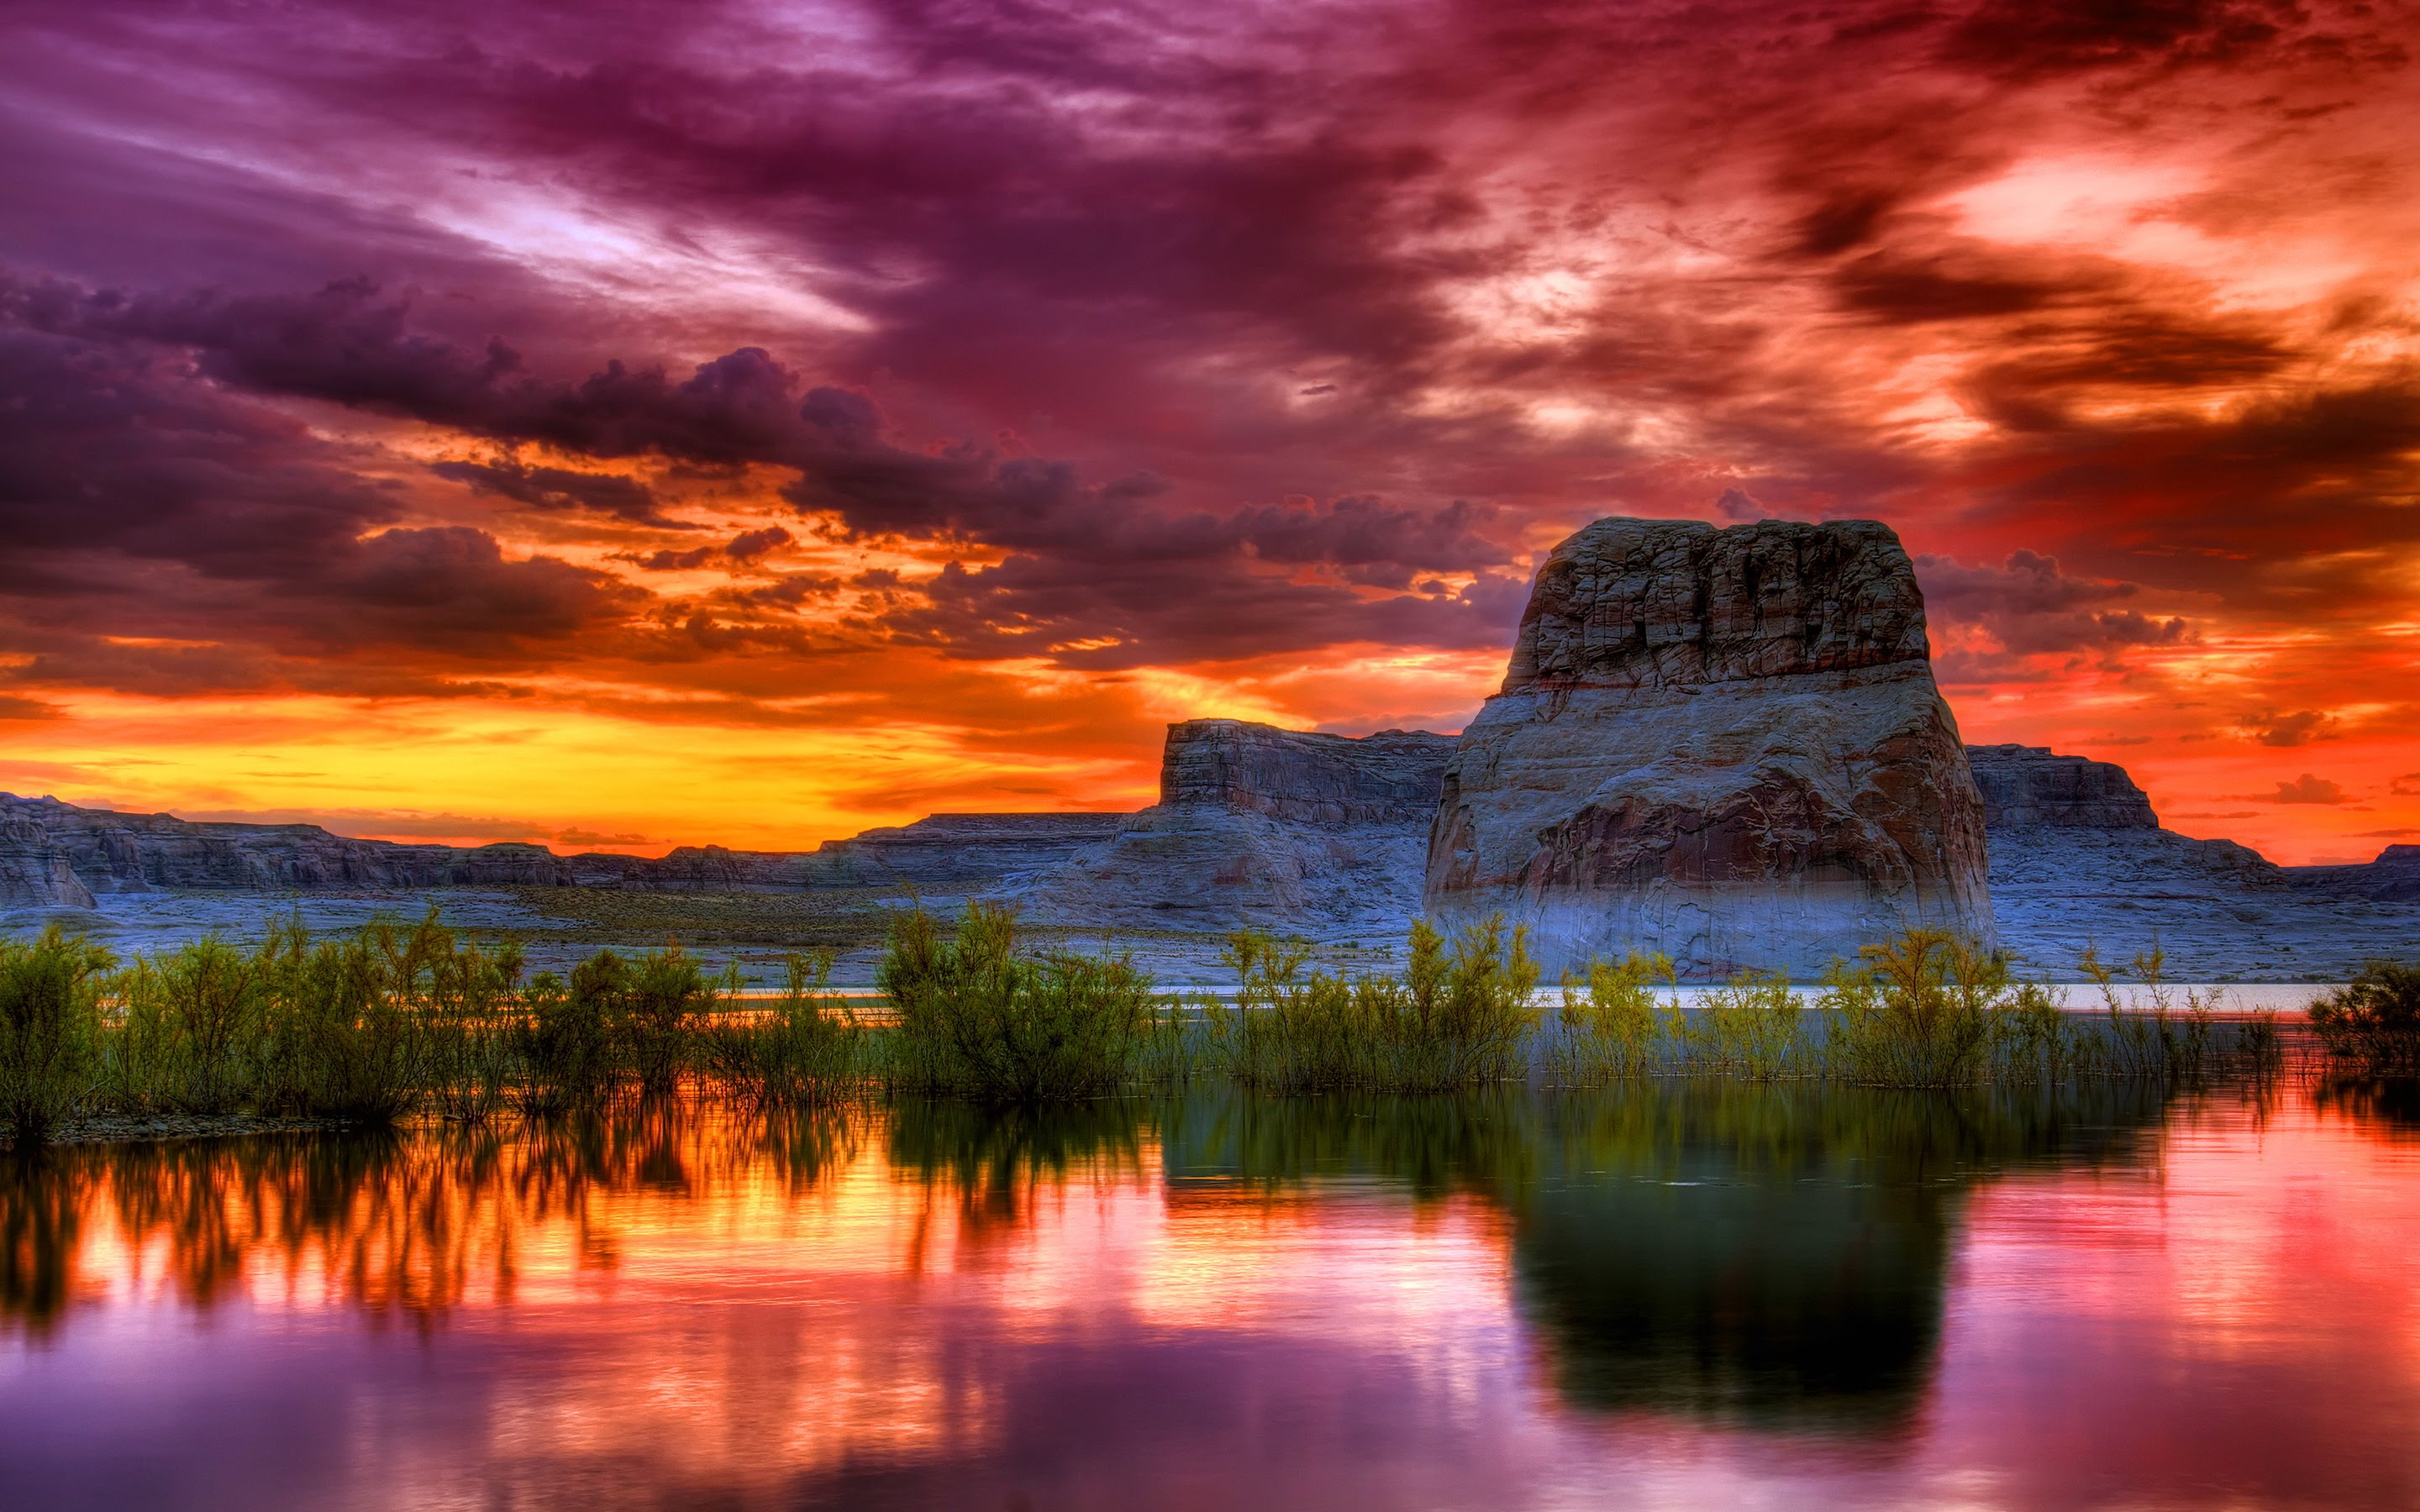 Cool Sun Quotes Wallpaper Arizona Sunset Scenery Lake Rocky Mountains Orange Clouds